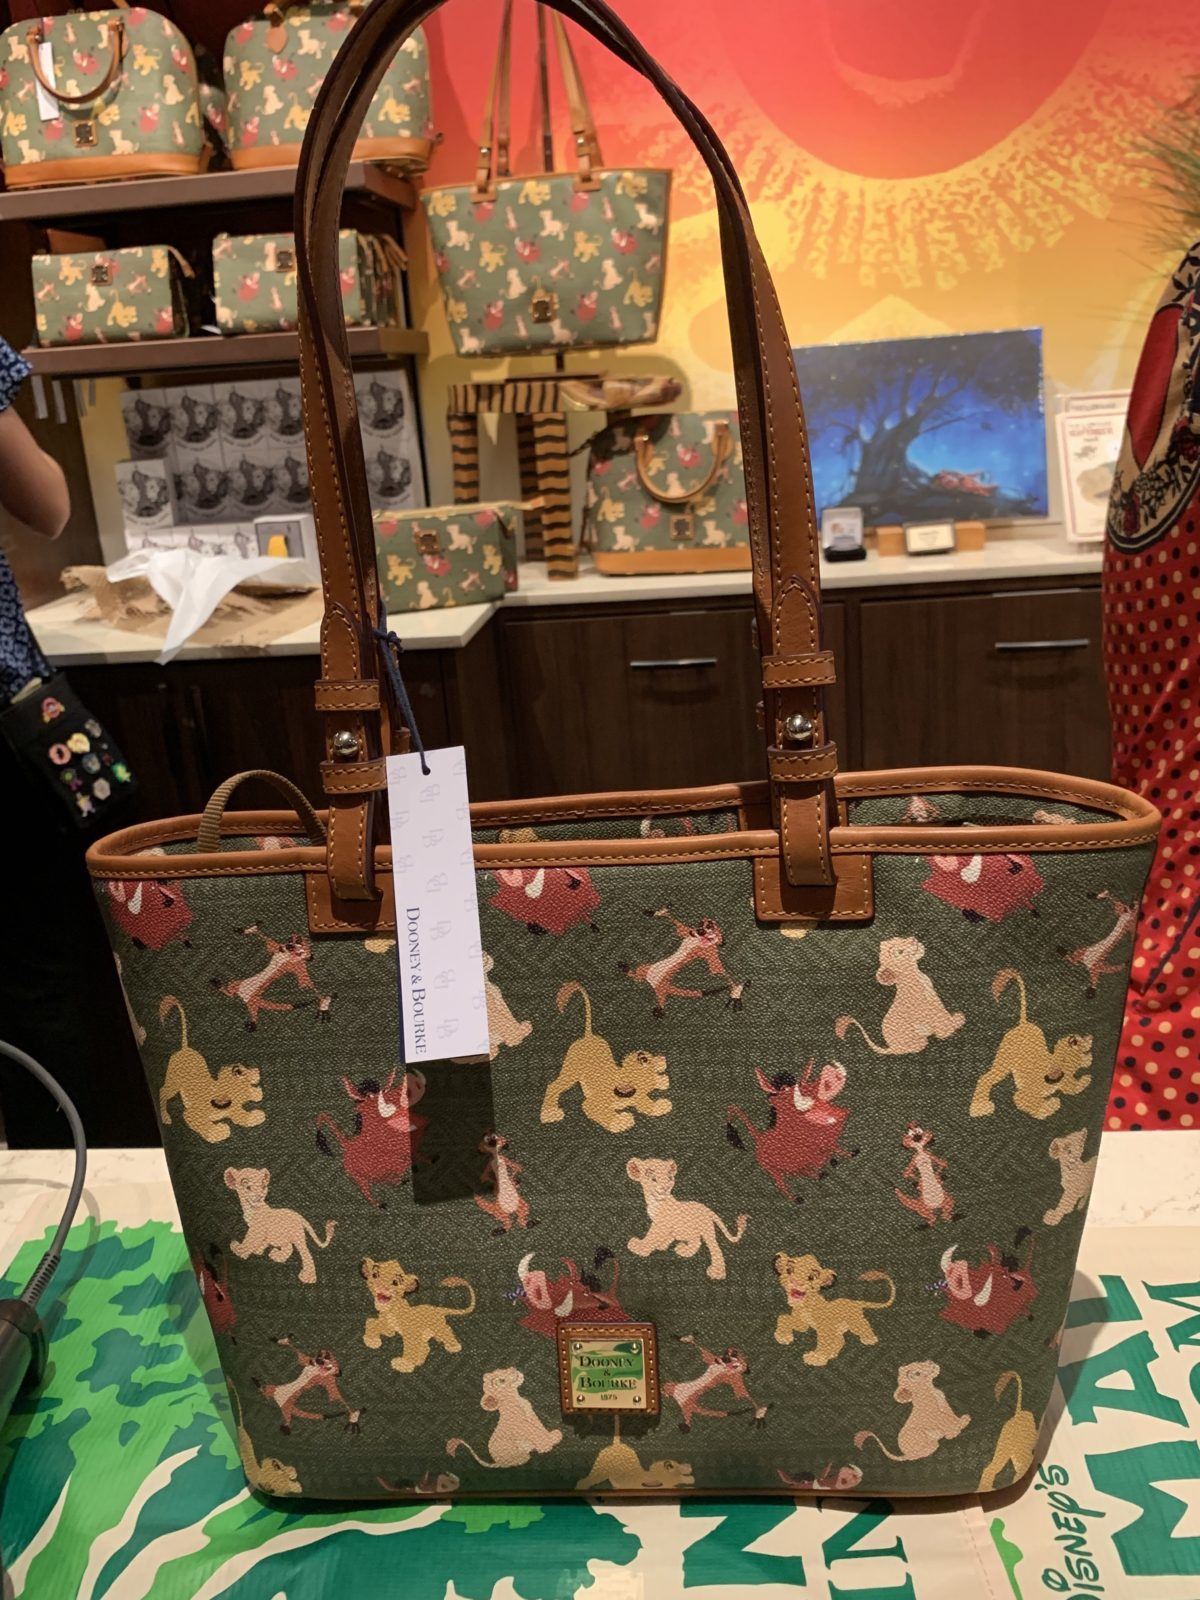 The Lion King Disney's Animal Kingdom Disney Dooney and Bourke Purse